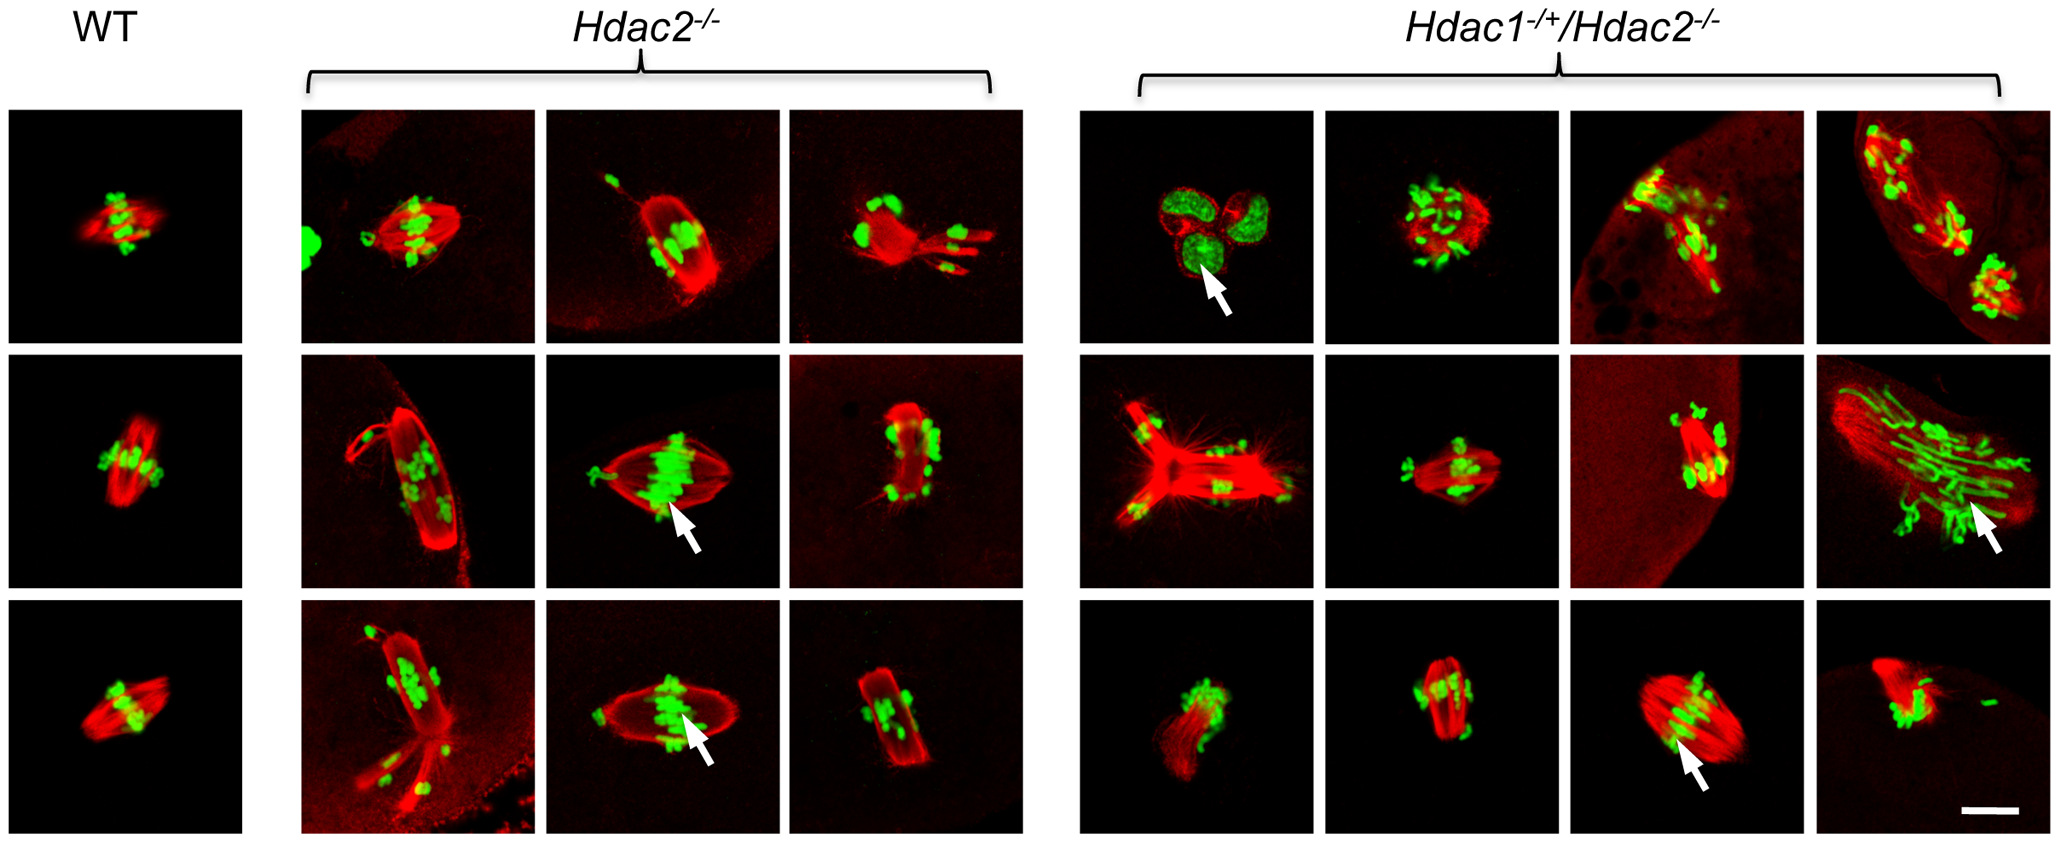 Loss of maternal HDAC2 causes defective chromosome condensation and congression in MII eggs.